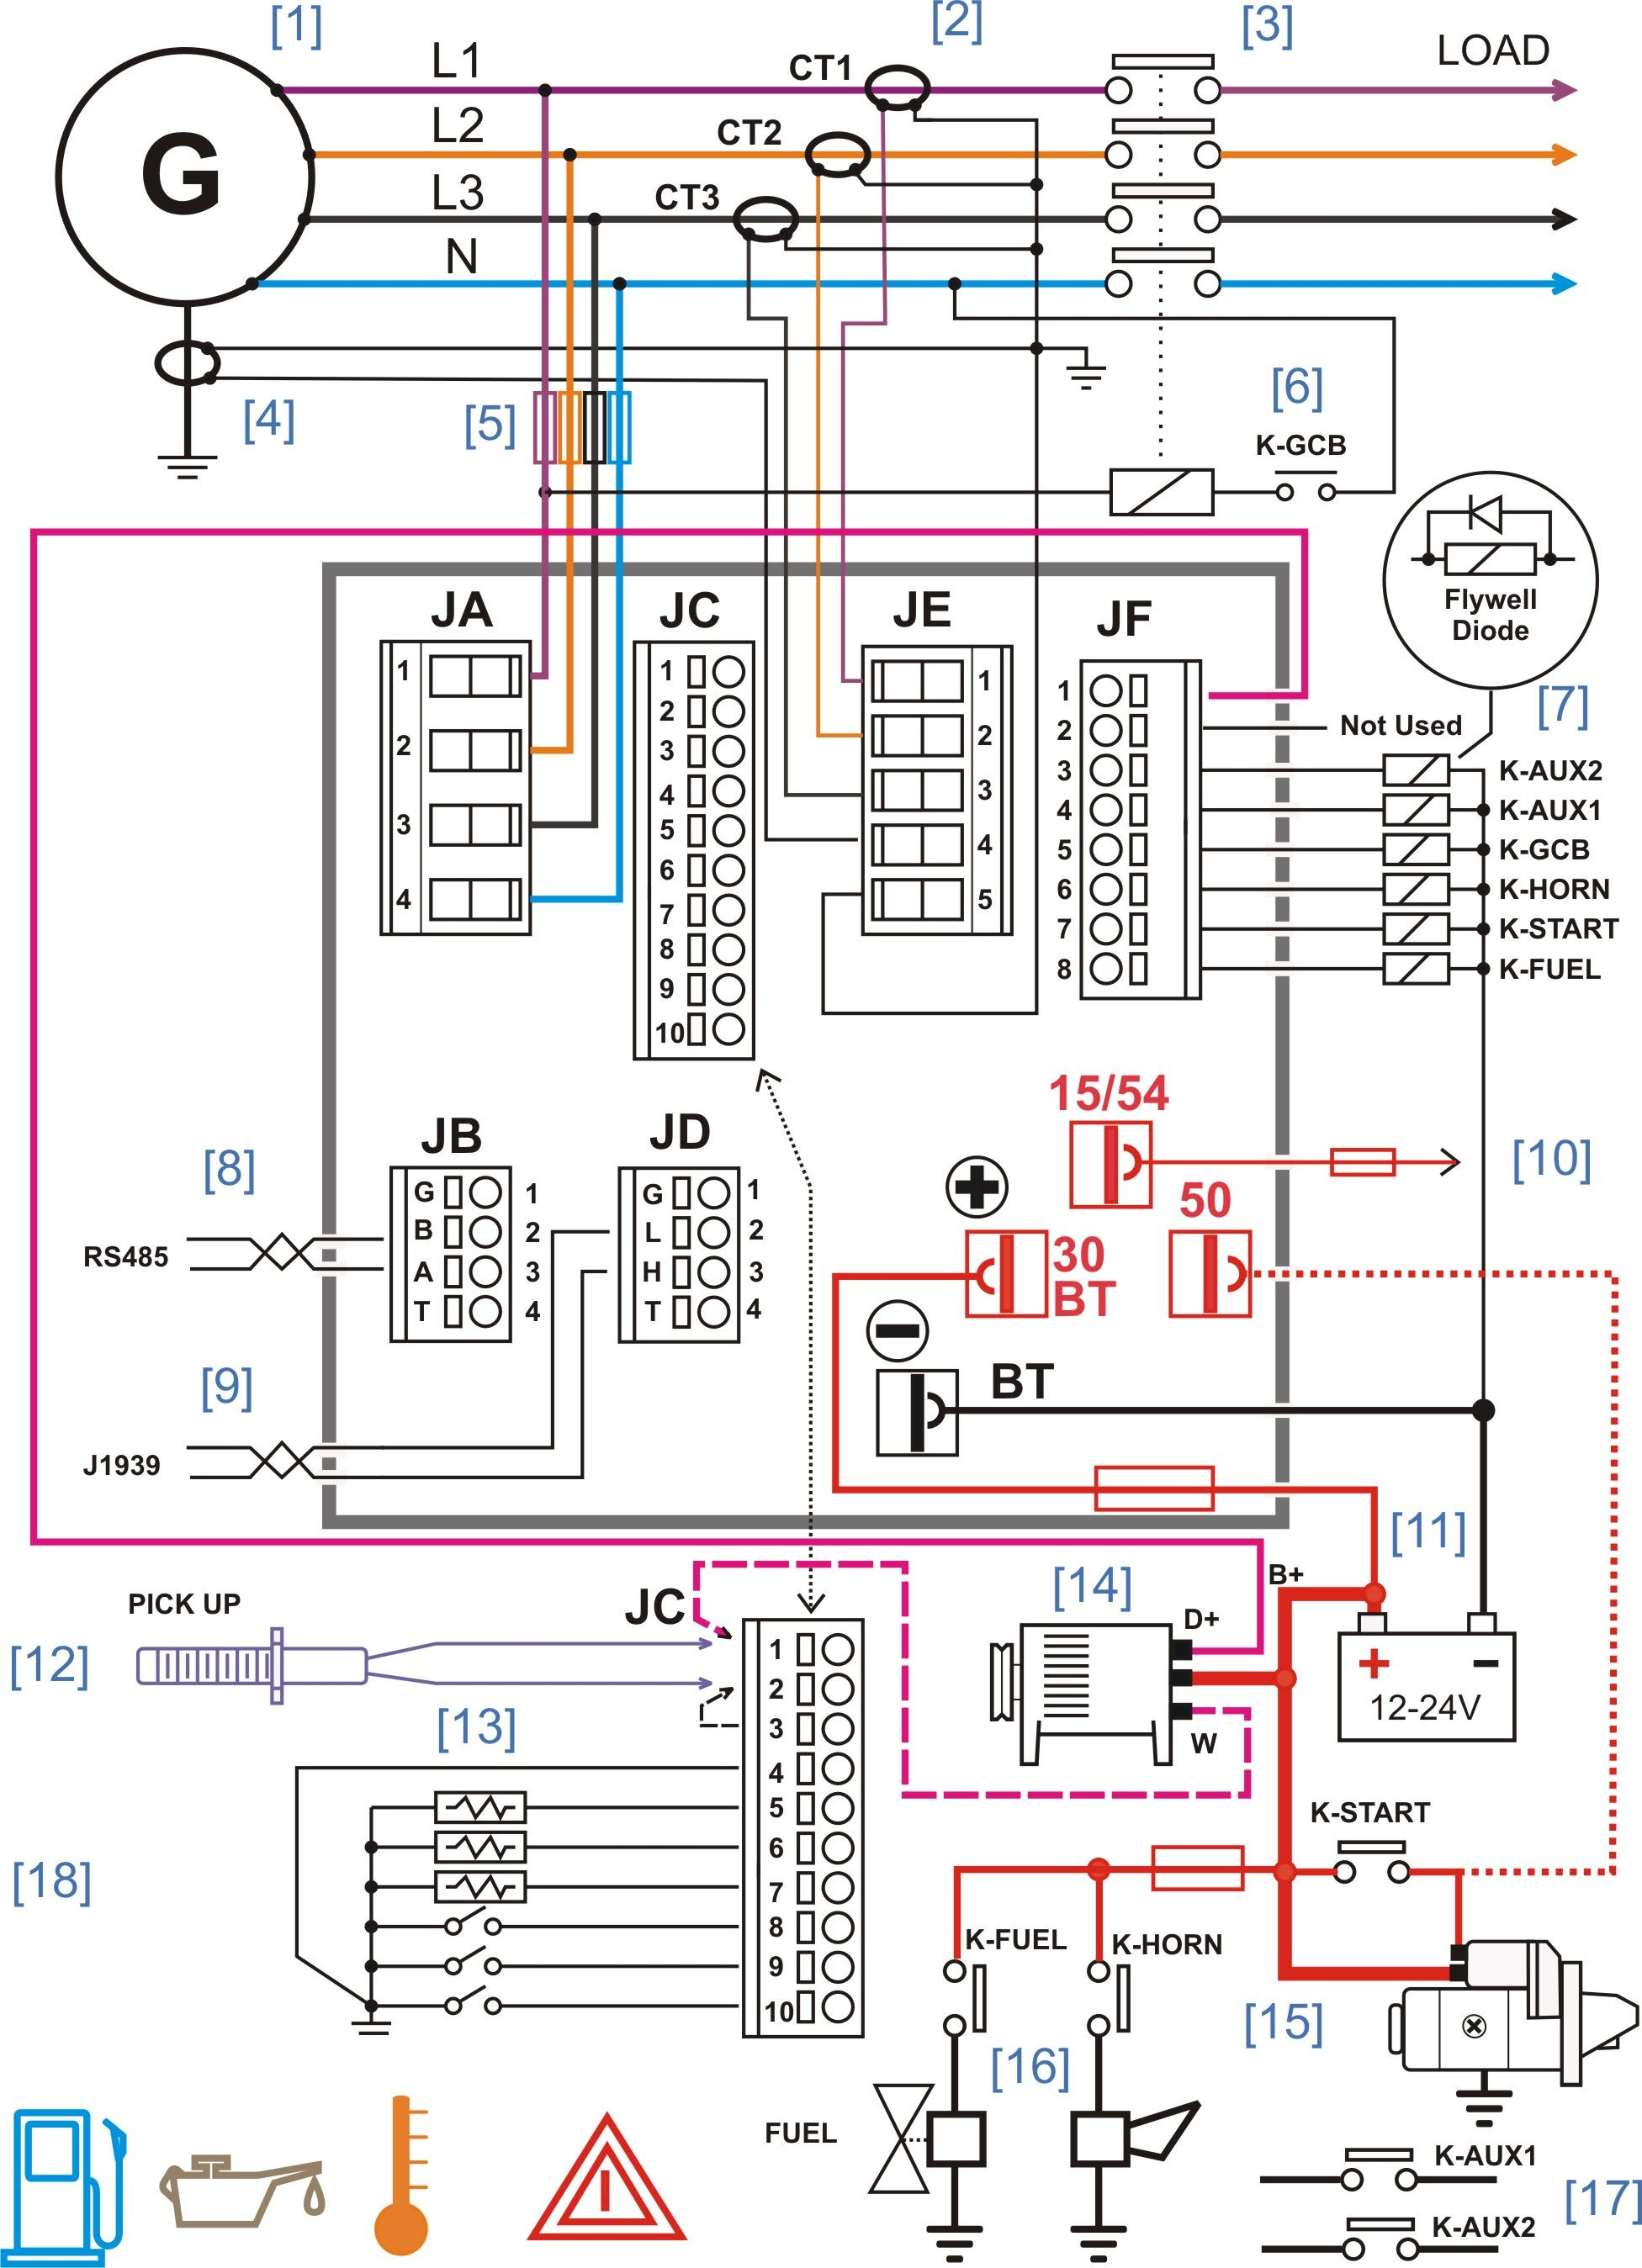 Easy Wiring Diagram Maker from i.pinimg.com